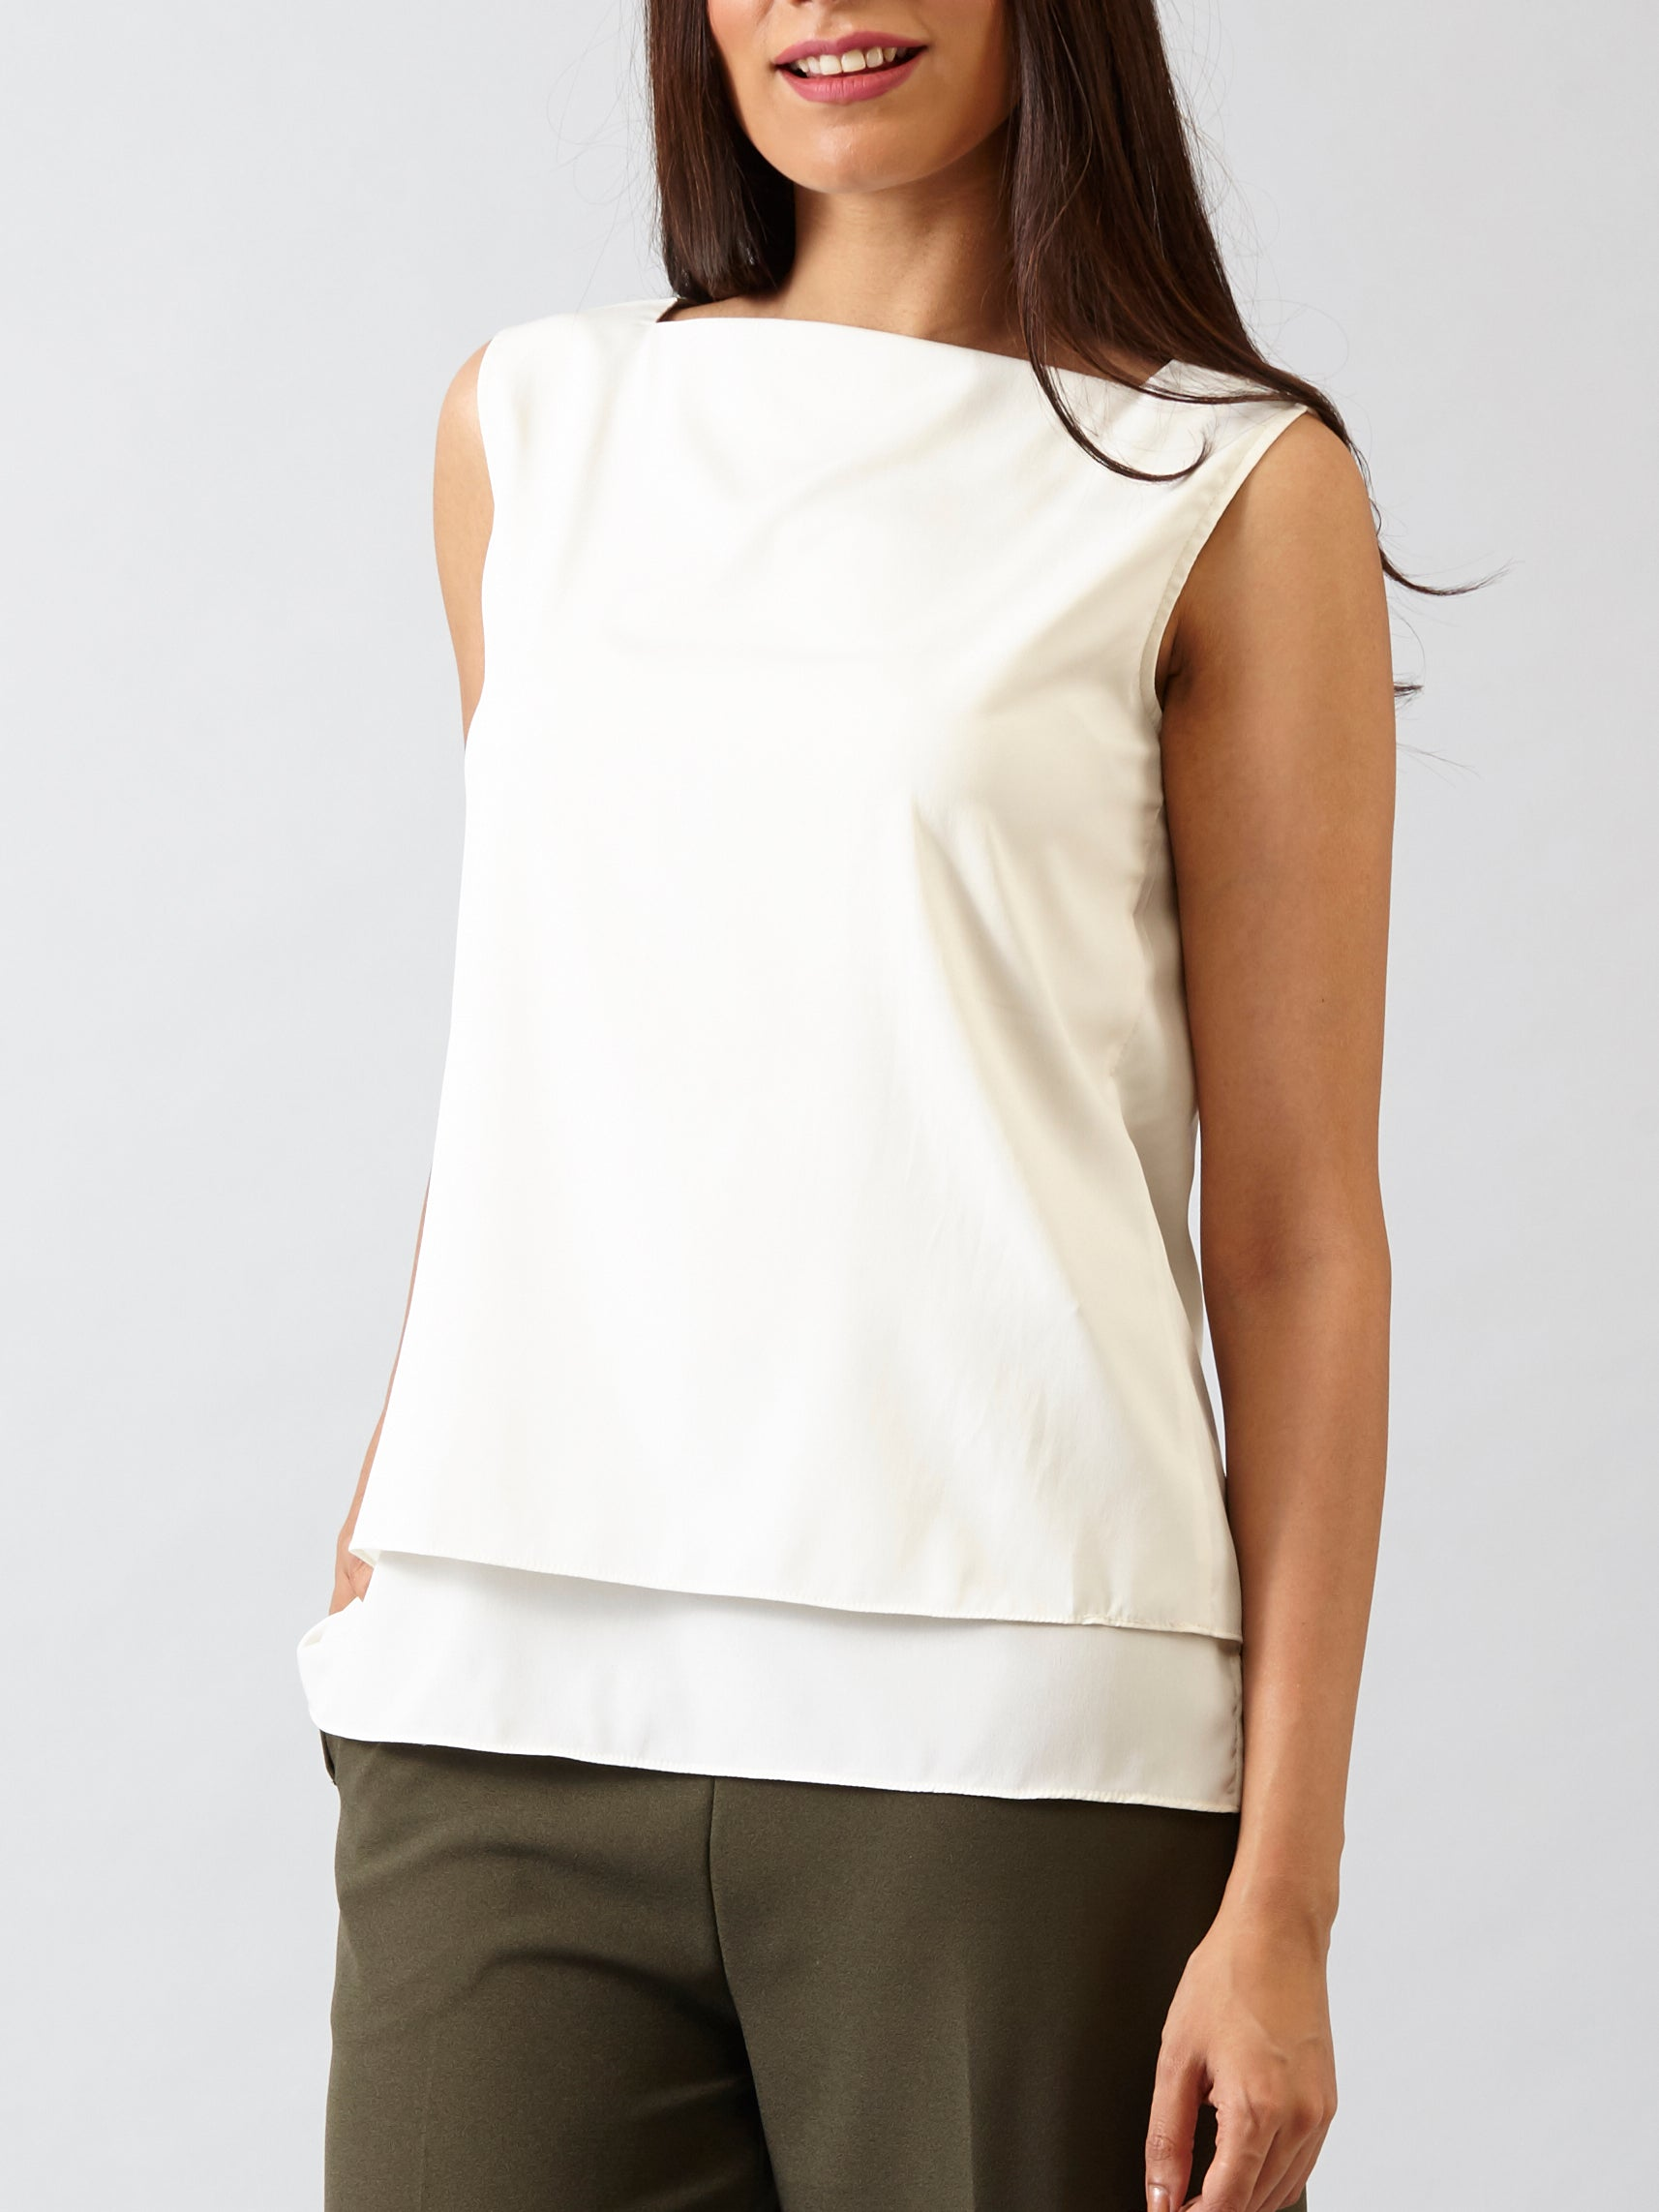 Wear It Two Ways Top - Off White